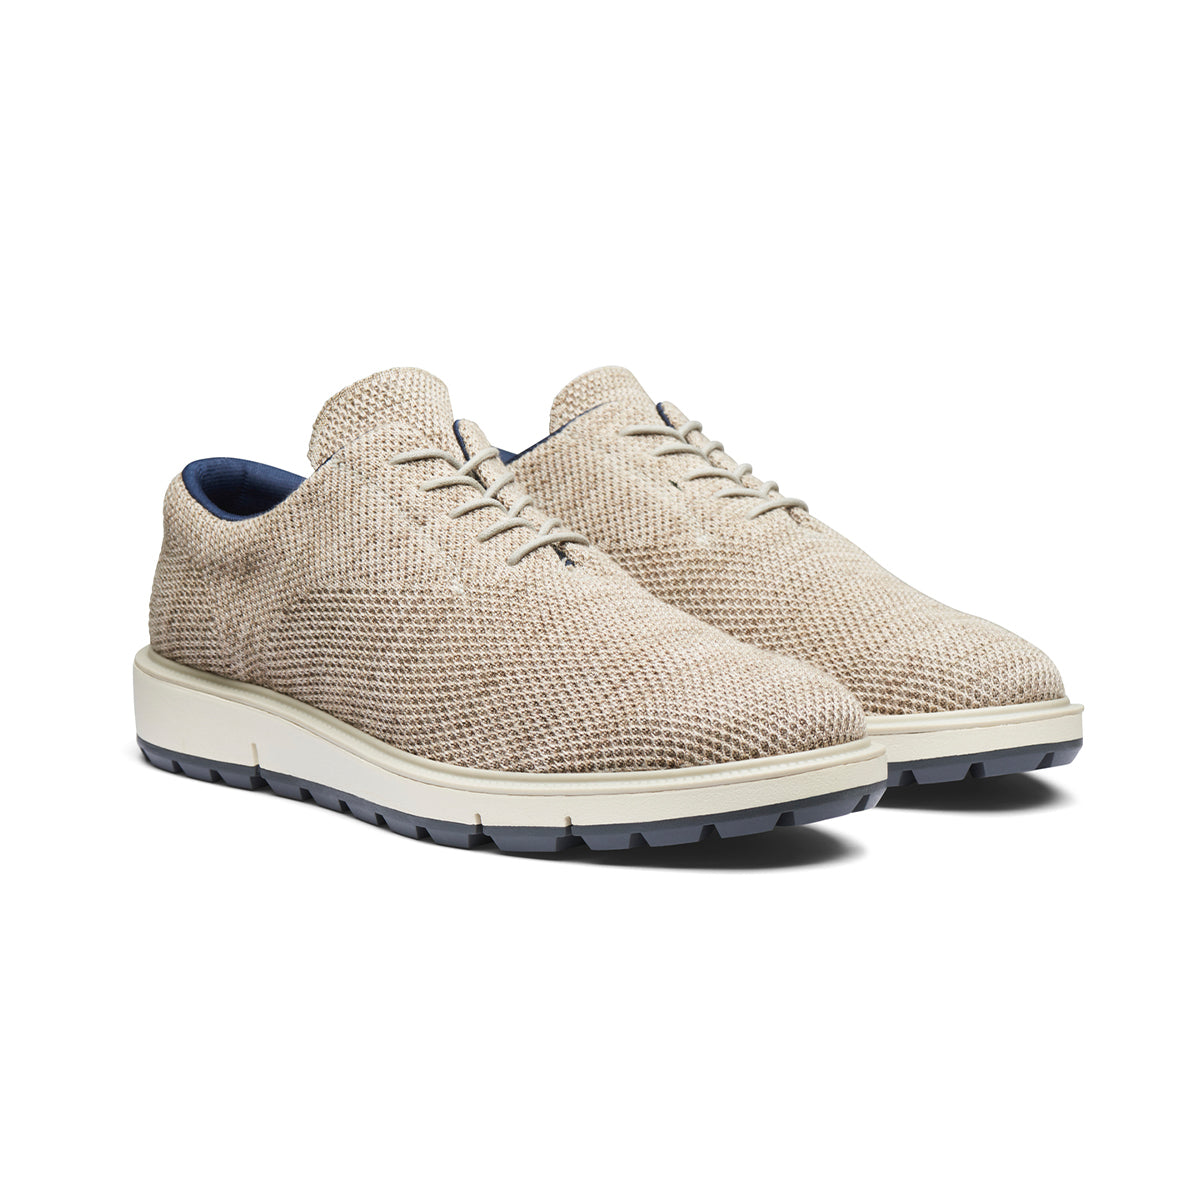 Motion Knit Wool Plain Toe - background::white,variant::grey